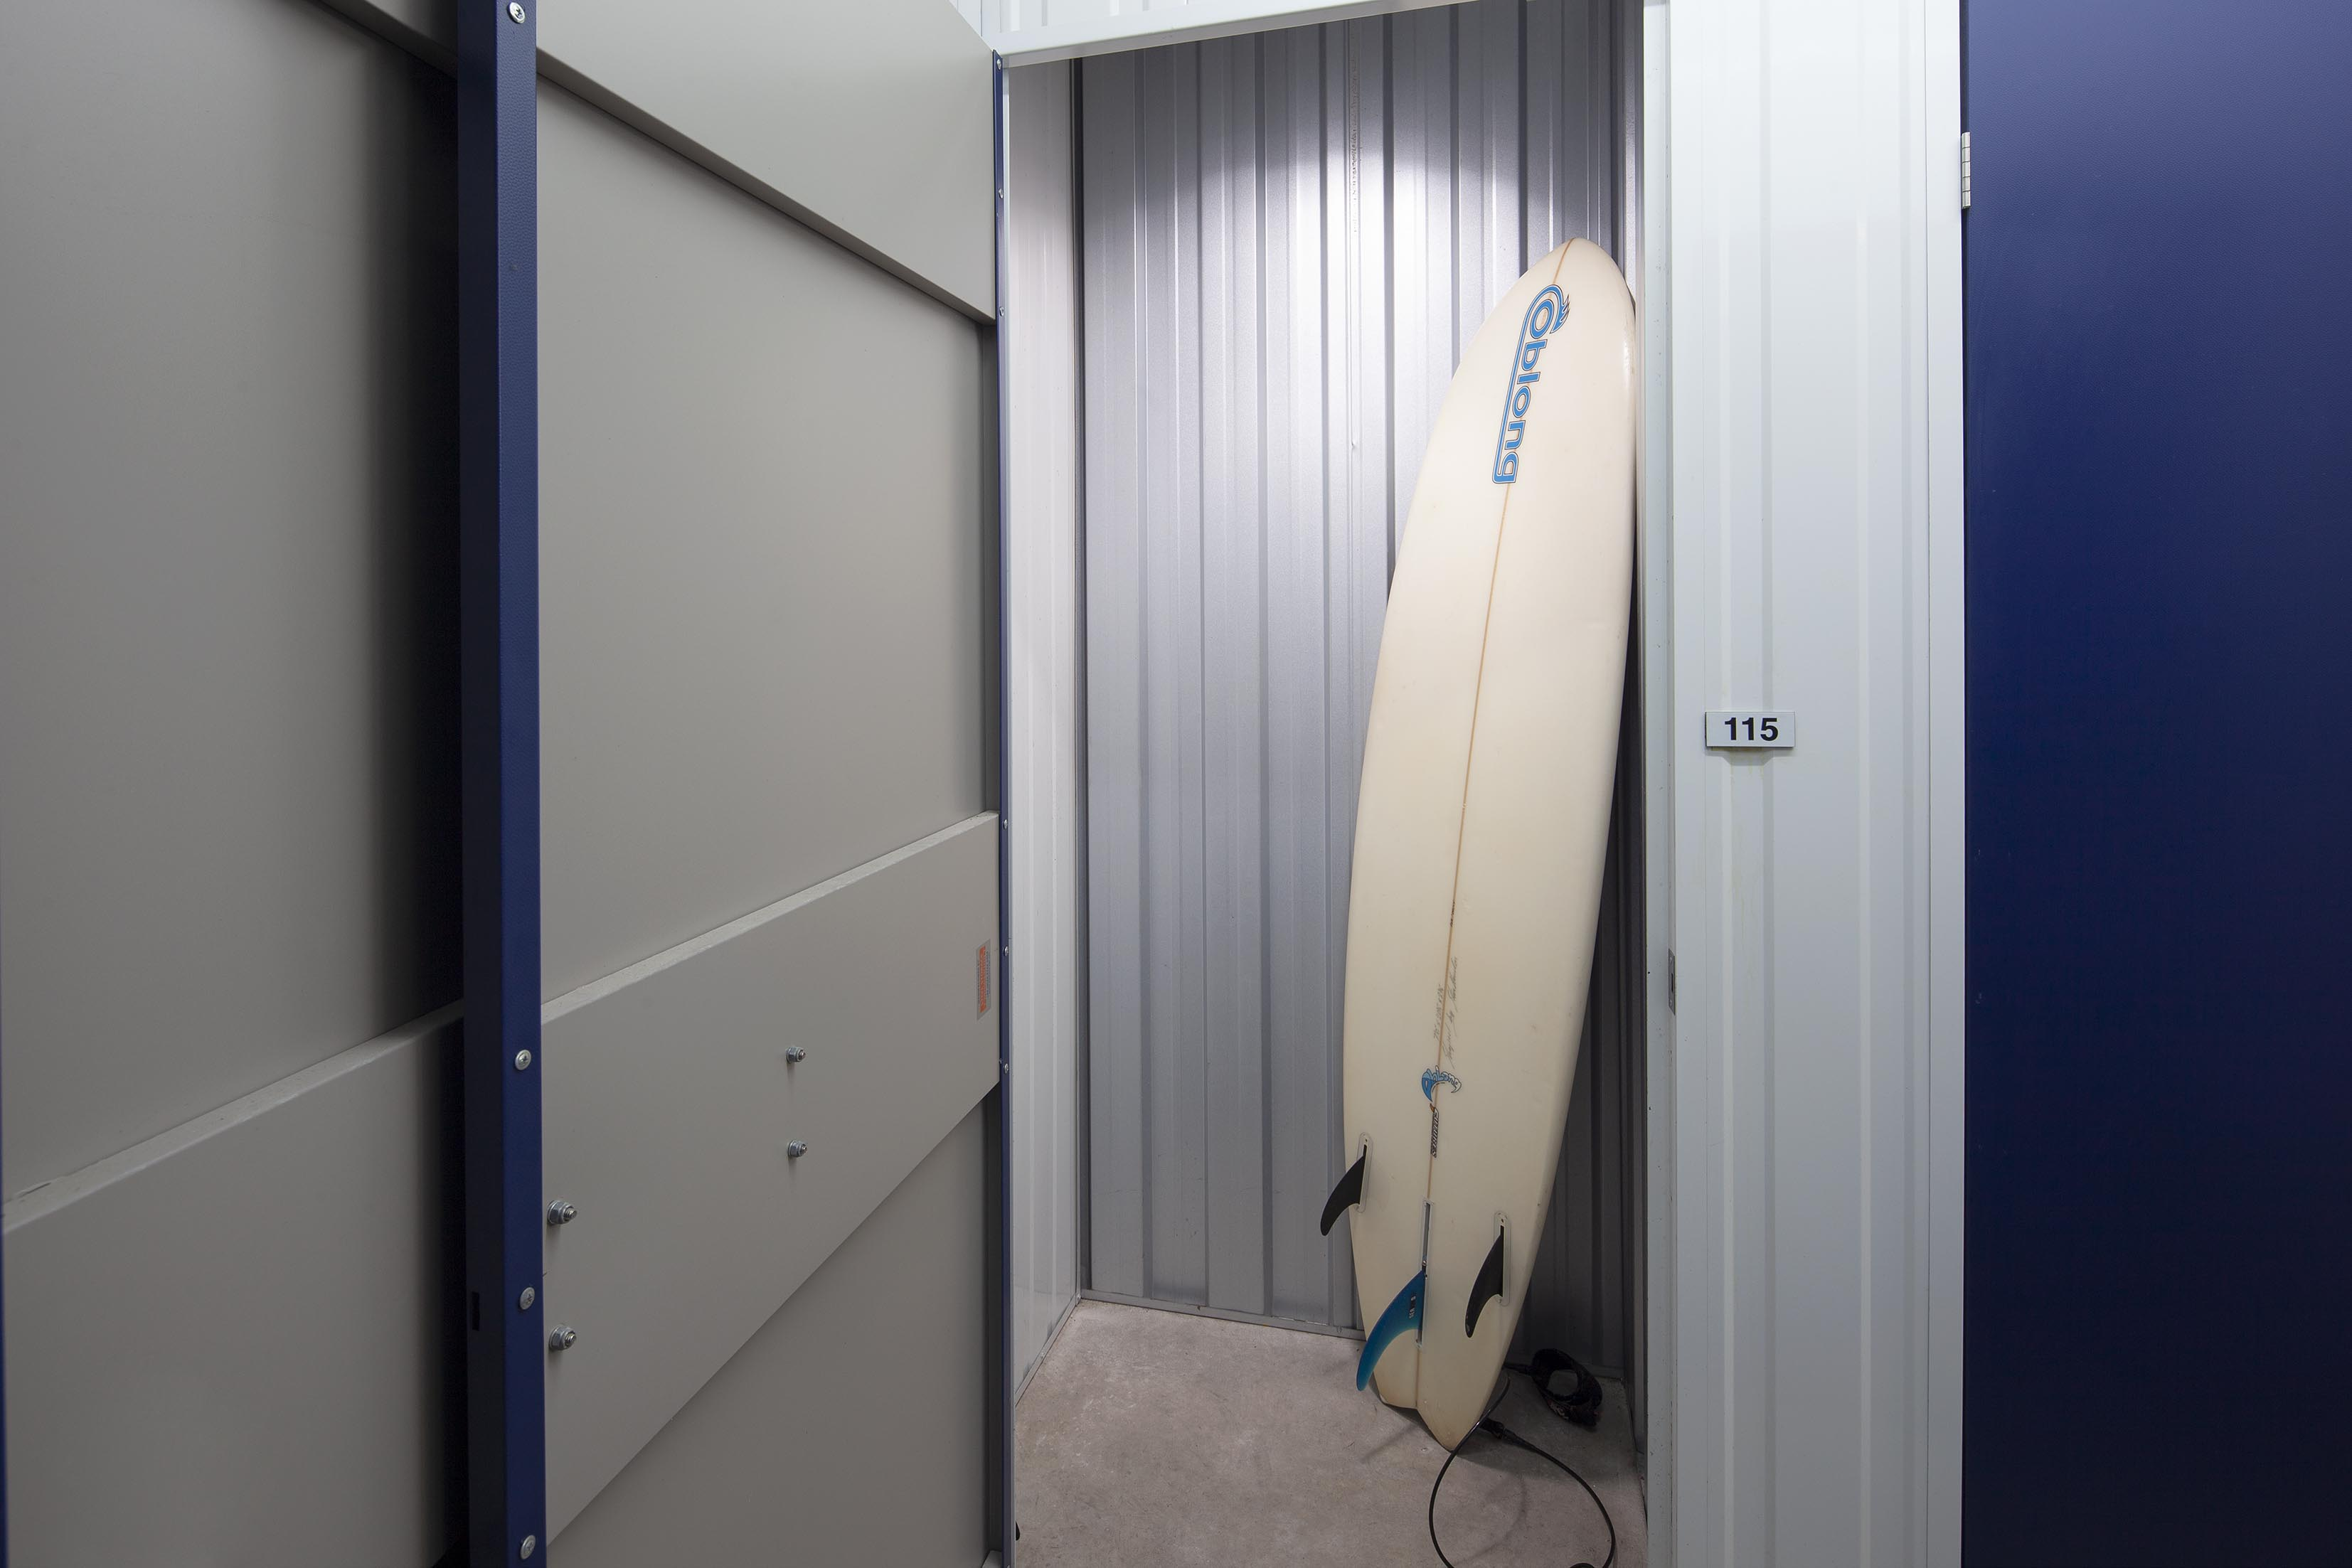 11sqft storage unit with a surf board stored in it